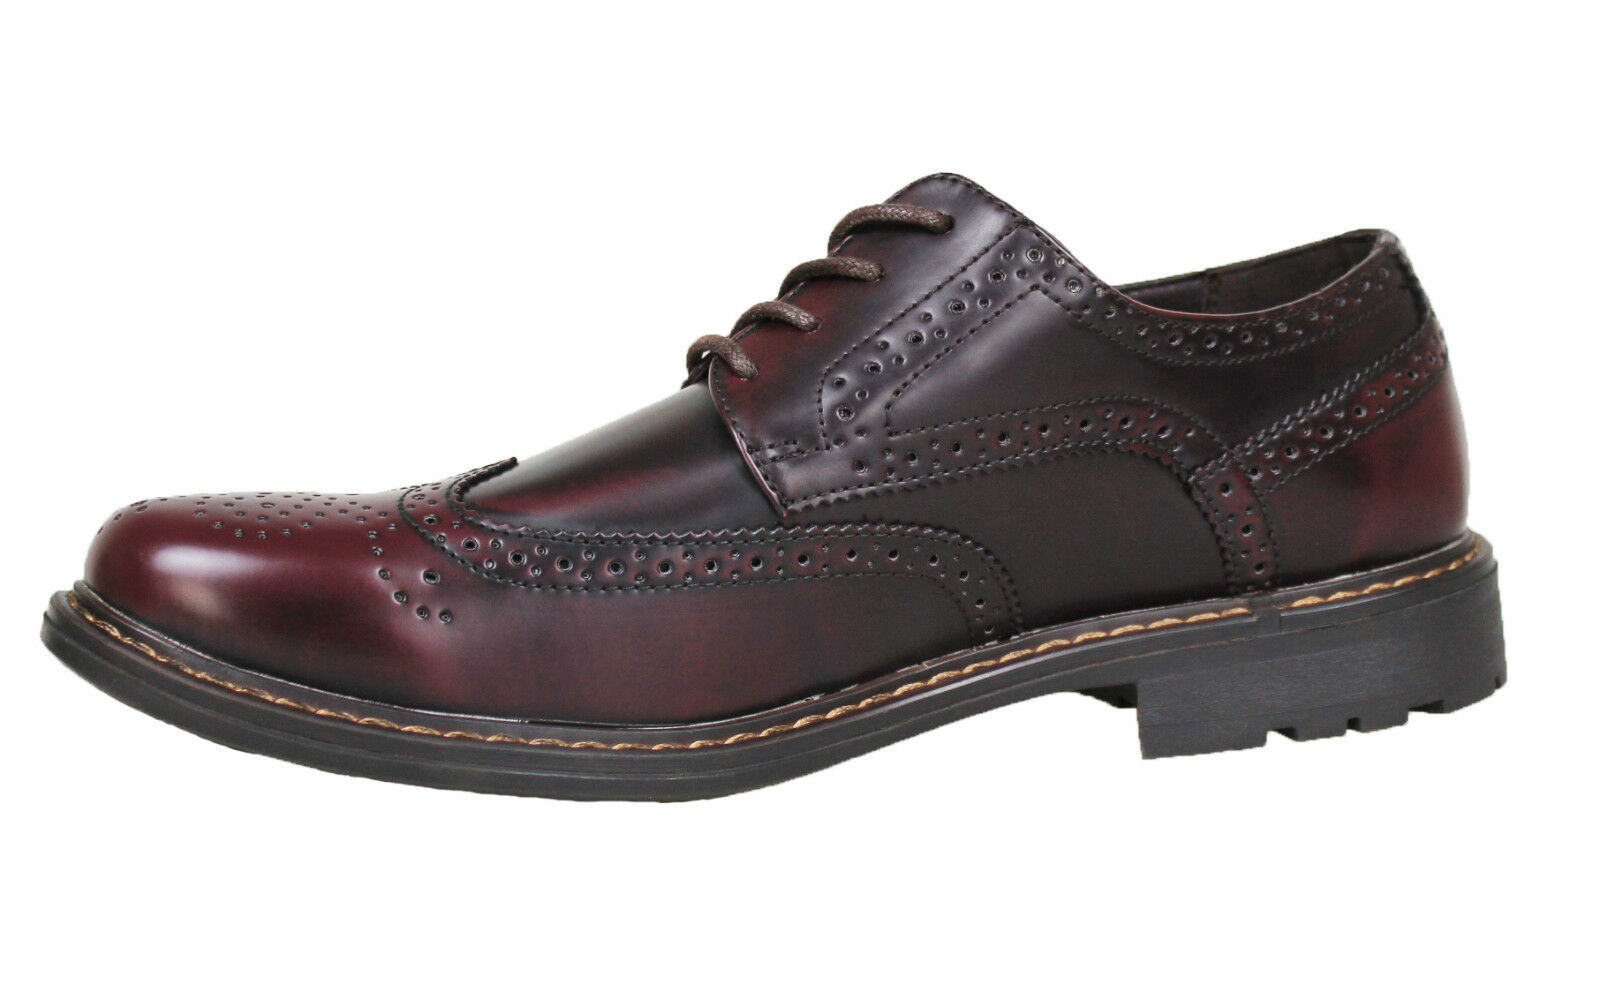 shoes FRANCESINE men CLASS BORDEAUX VERNICE EFFETTO LUCIDO CASUAL ELEGANTI